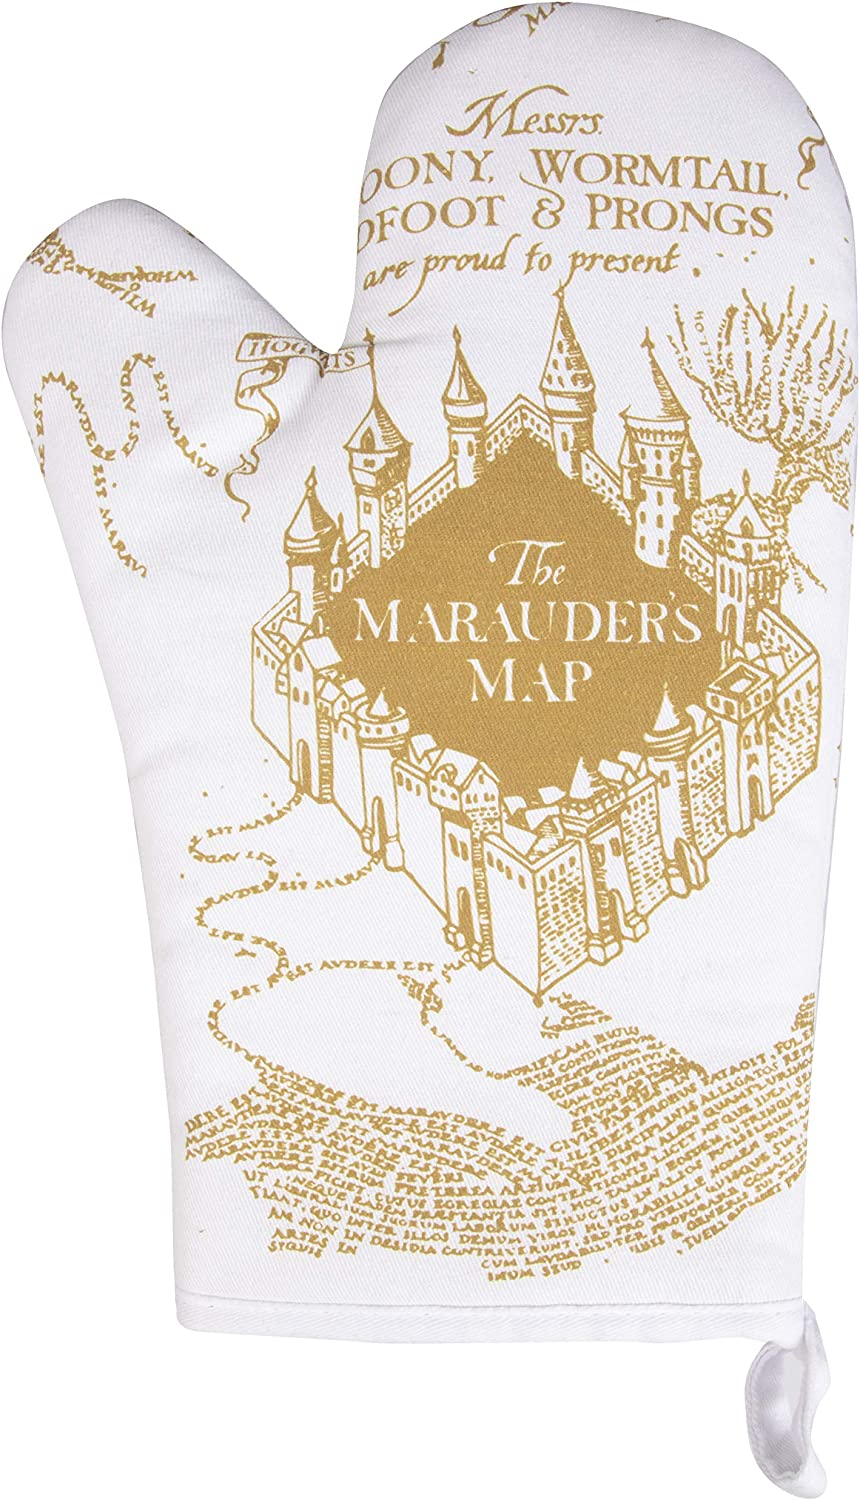 Harry Potter Marauder's Map Oven Mitt - Heat Resistant - 100% Cotton - Right Hand